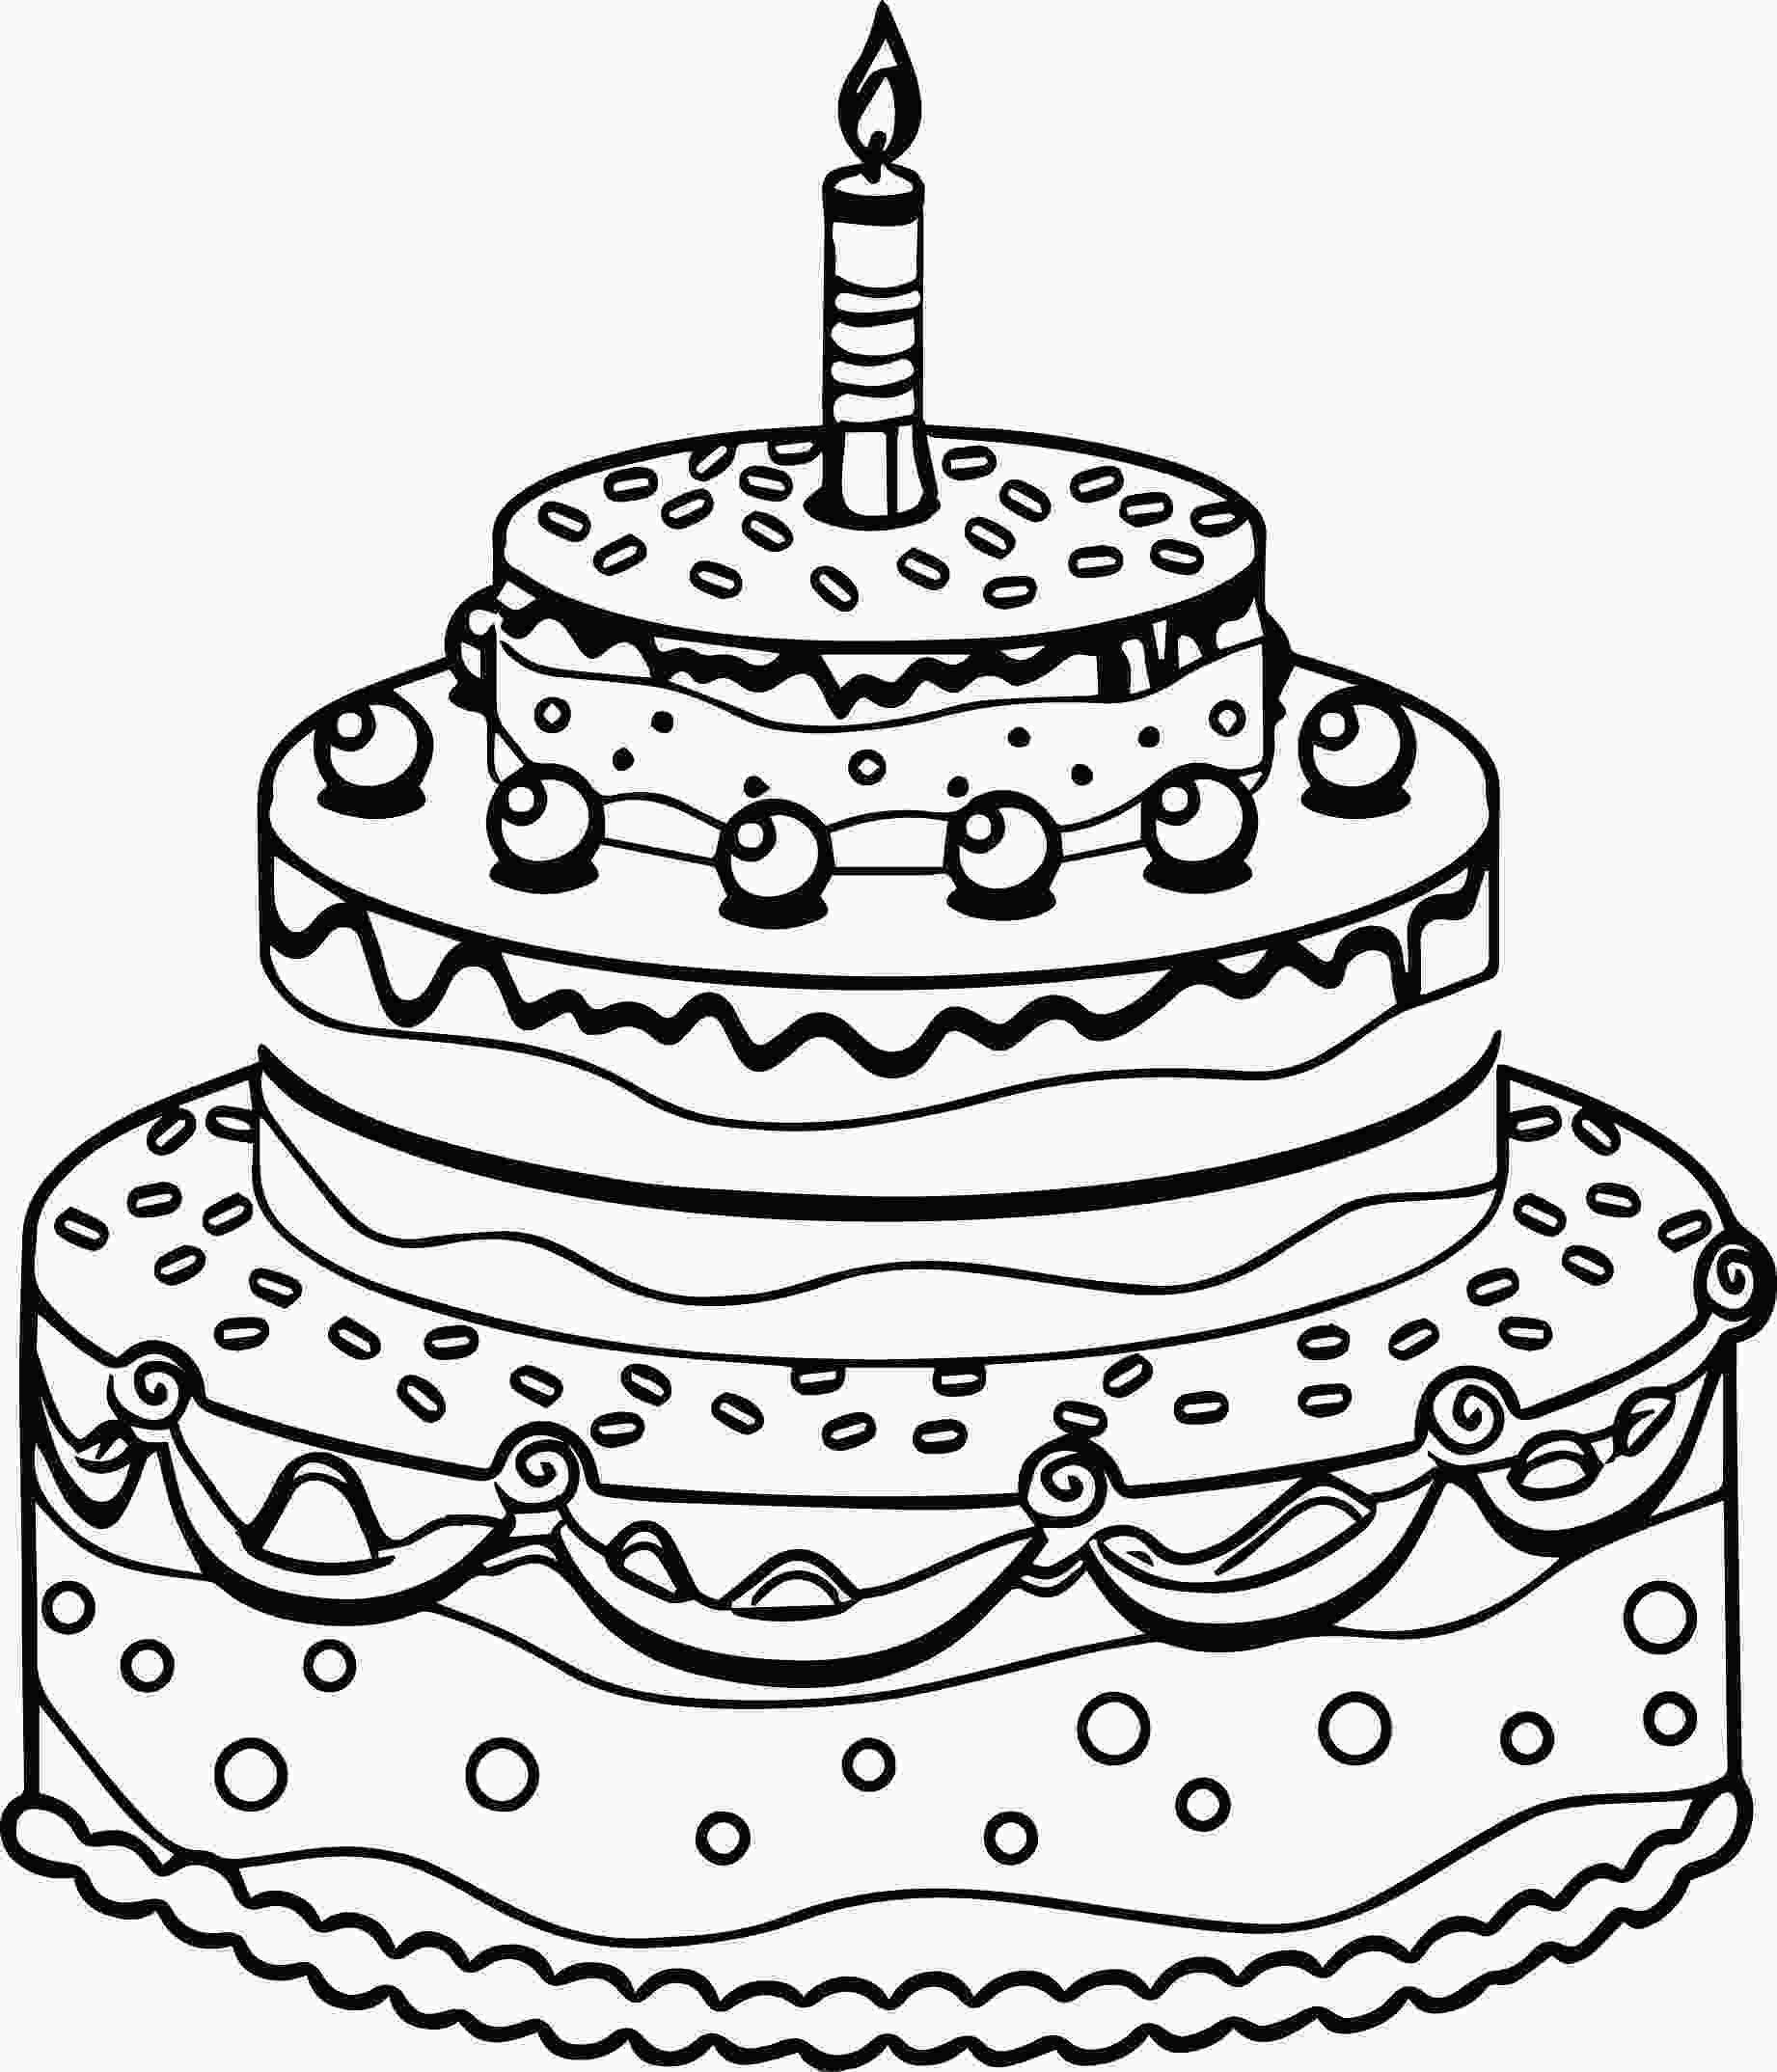 picture of cake to color birthday cake coloring page at getcoloringscom free